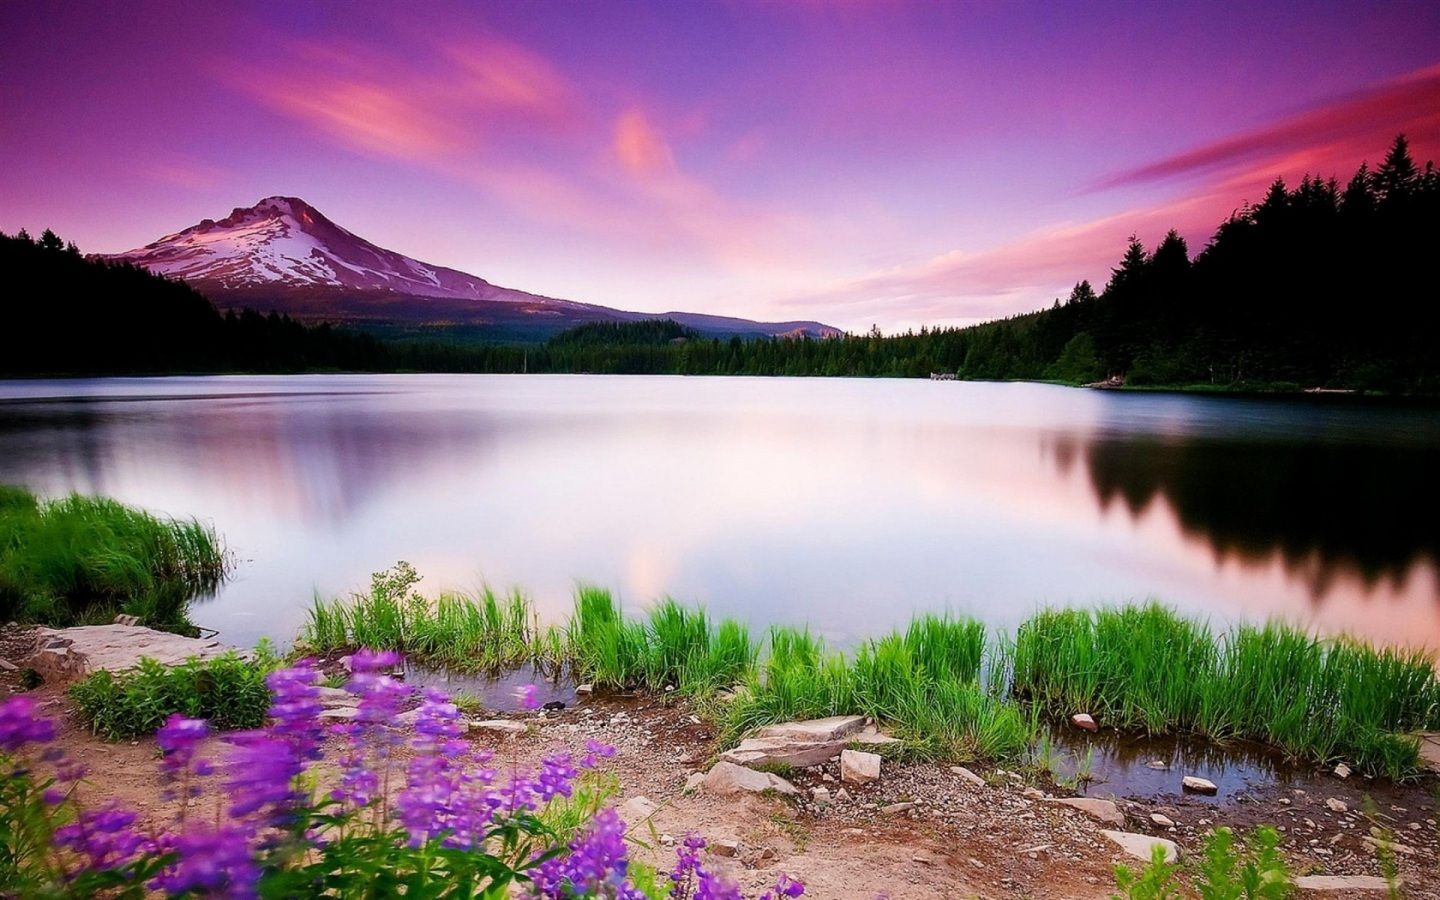 Full Hd Scenery Wallpapers Free Download